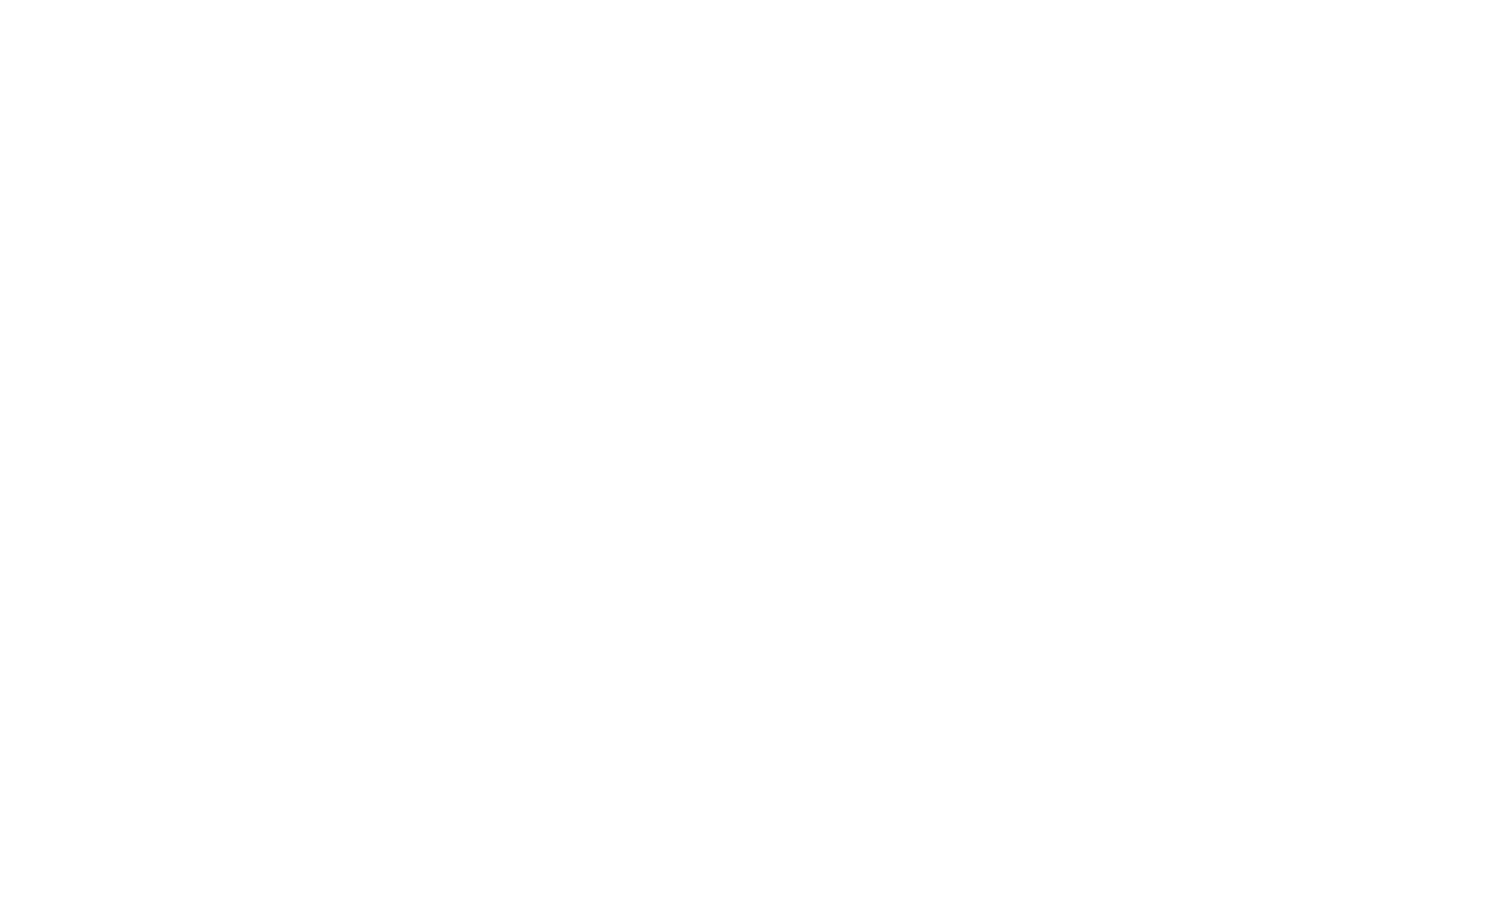 Boxwood Home & Gift